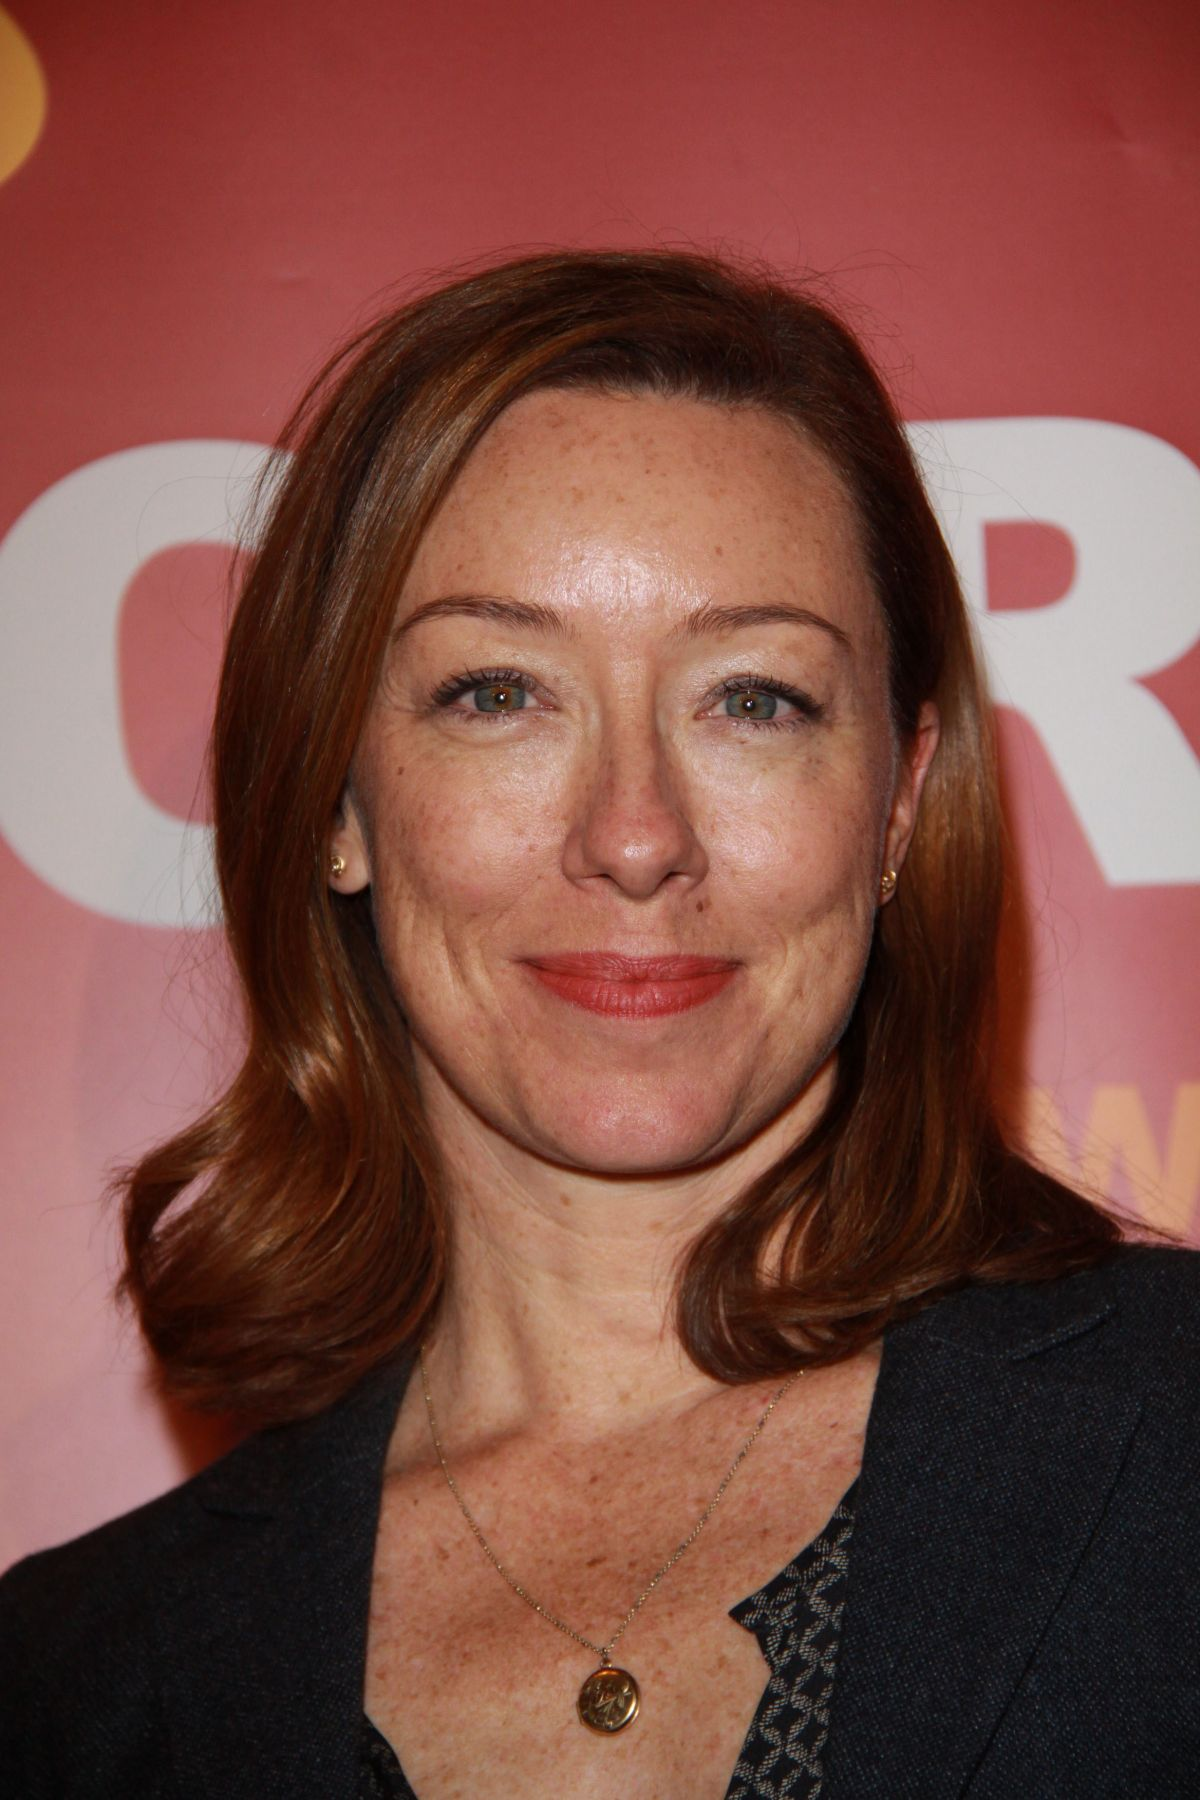 molly parker actressmolly parker facebook, molly parker instagram, molly parker house of cards, molly parker young, molly parker fansite, molly parker, molly parker imdb, molly parker dexter, molly parker wiki, molly parker deadwood, molly parker kissed, molly parker actress, molly parker mr skin, molly parker heroes, molly parker interview